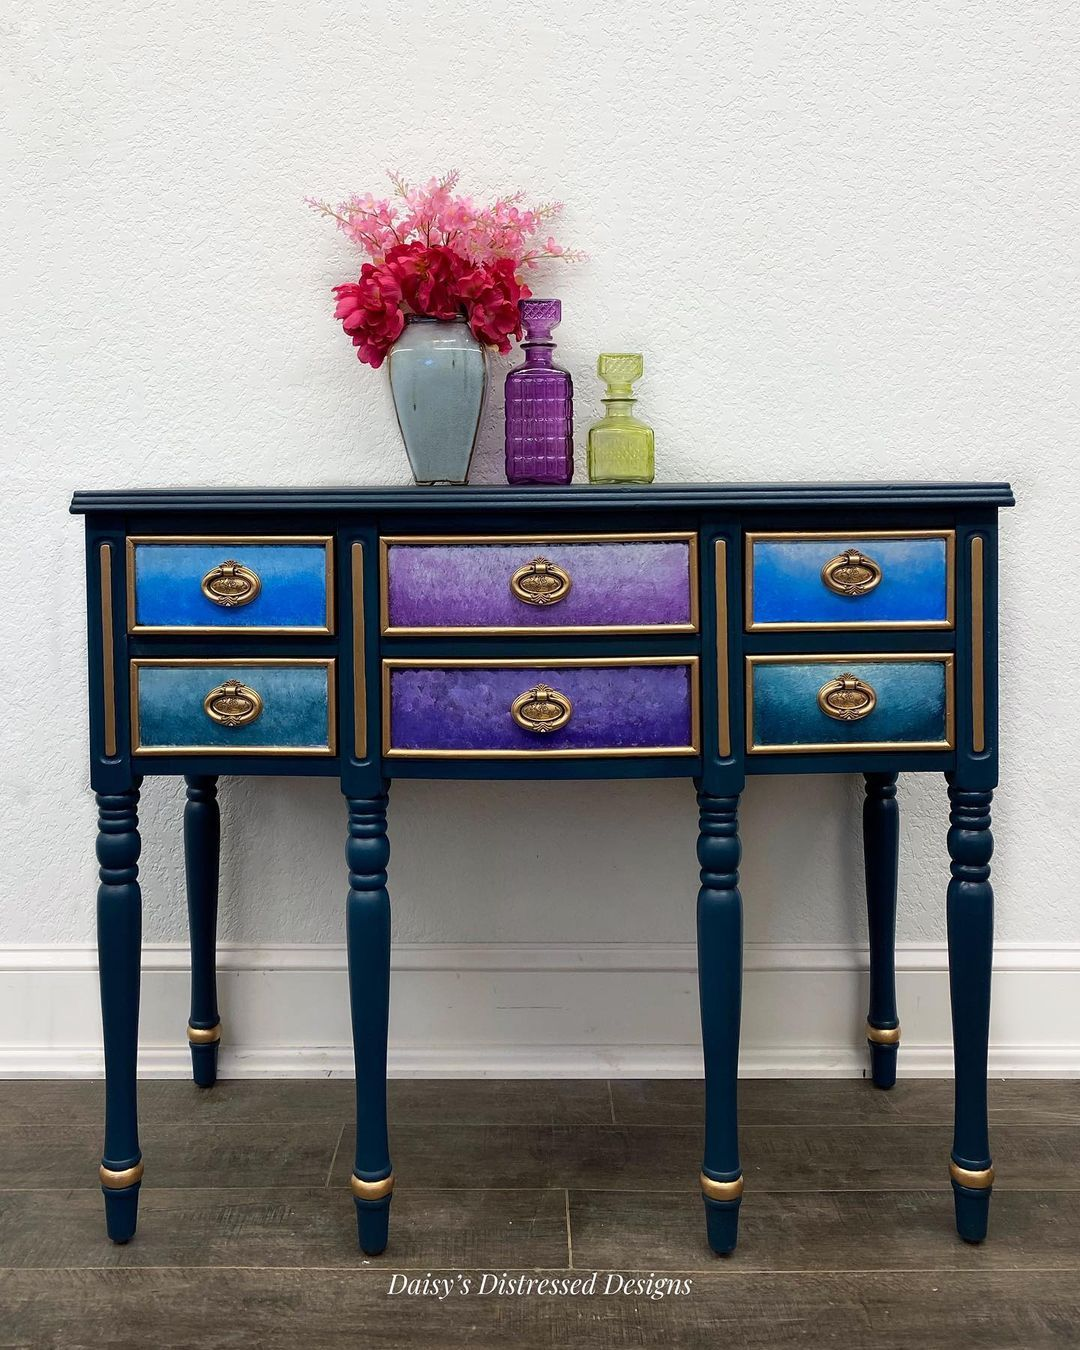 """Daisy's Distressed Designs on Instagram: """"My daughter and I just finished this gorgeous entry table. A custom for Sandy! #lovingthesecolors #colormovement #paintedwithlove"""""""